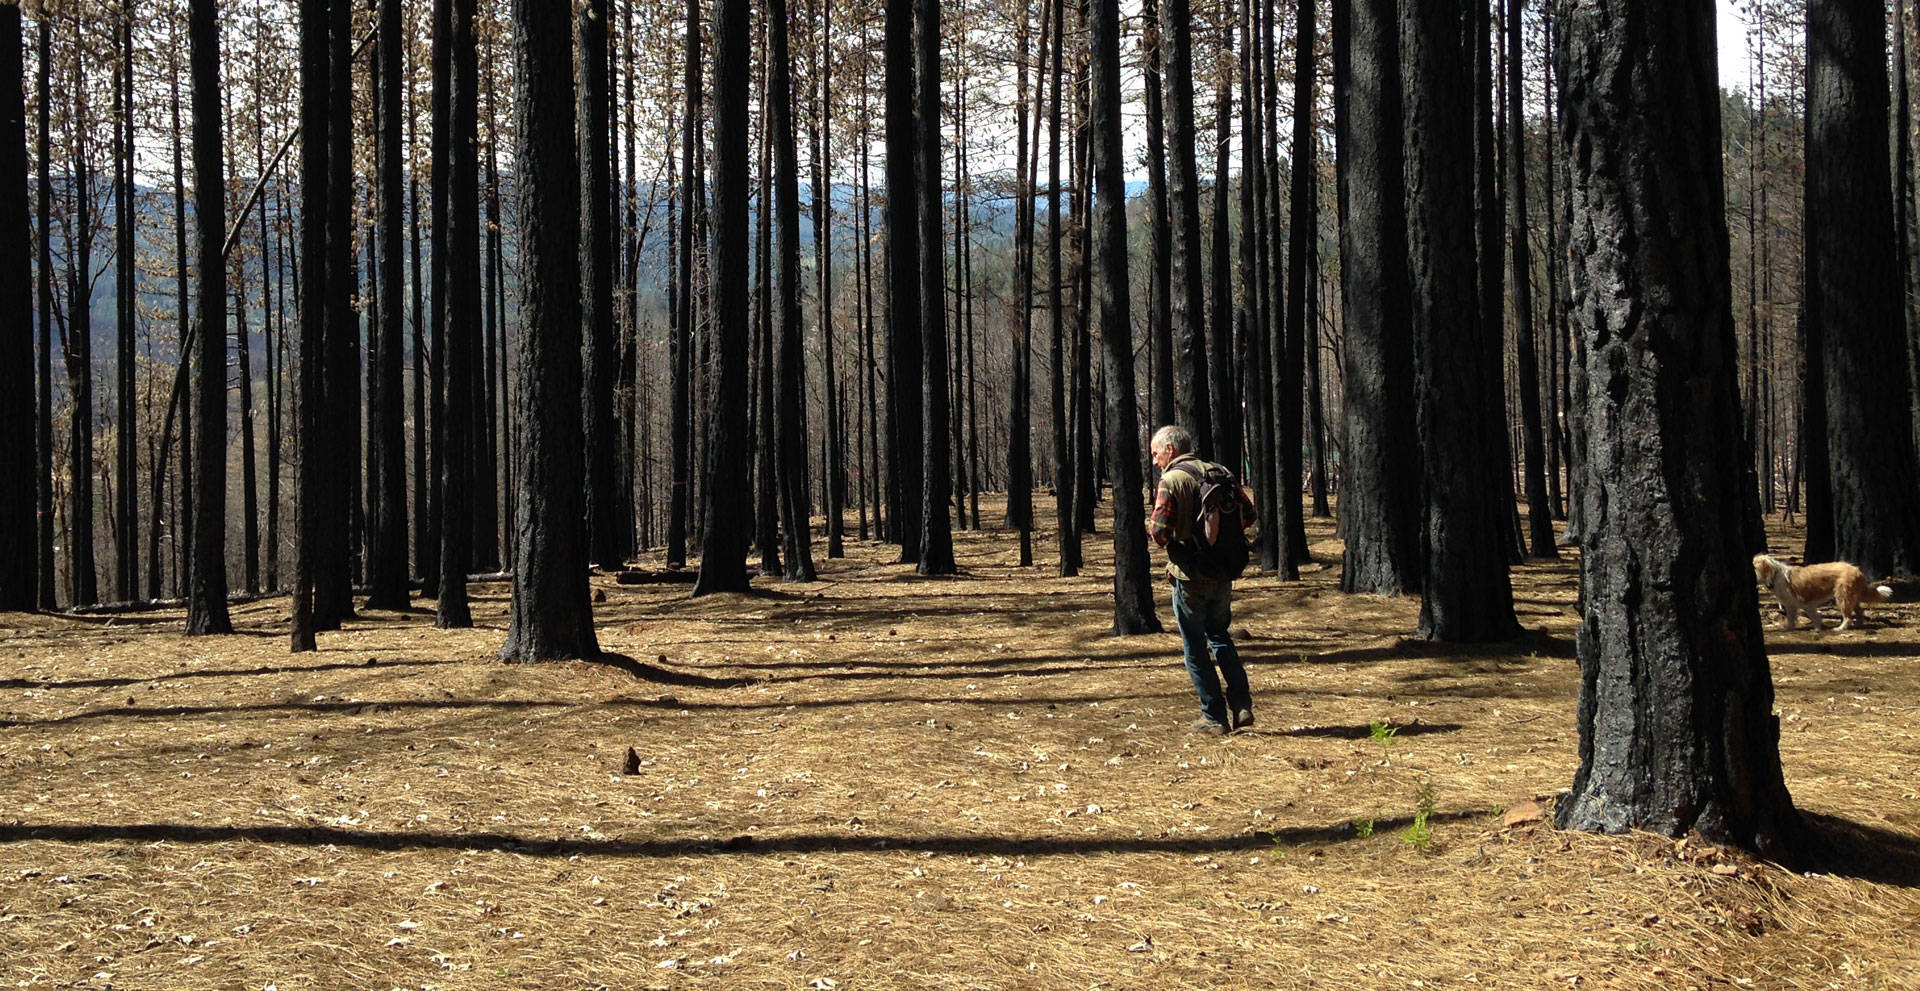 Kevin Sadlier hunts for morels in the Lake County forest burned by the Valley Fire. Lisa Morehouse/KQED